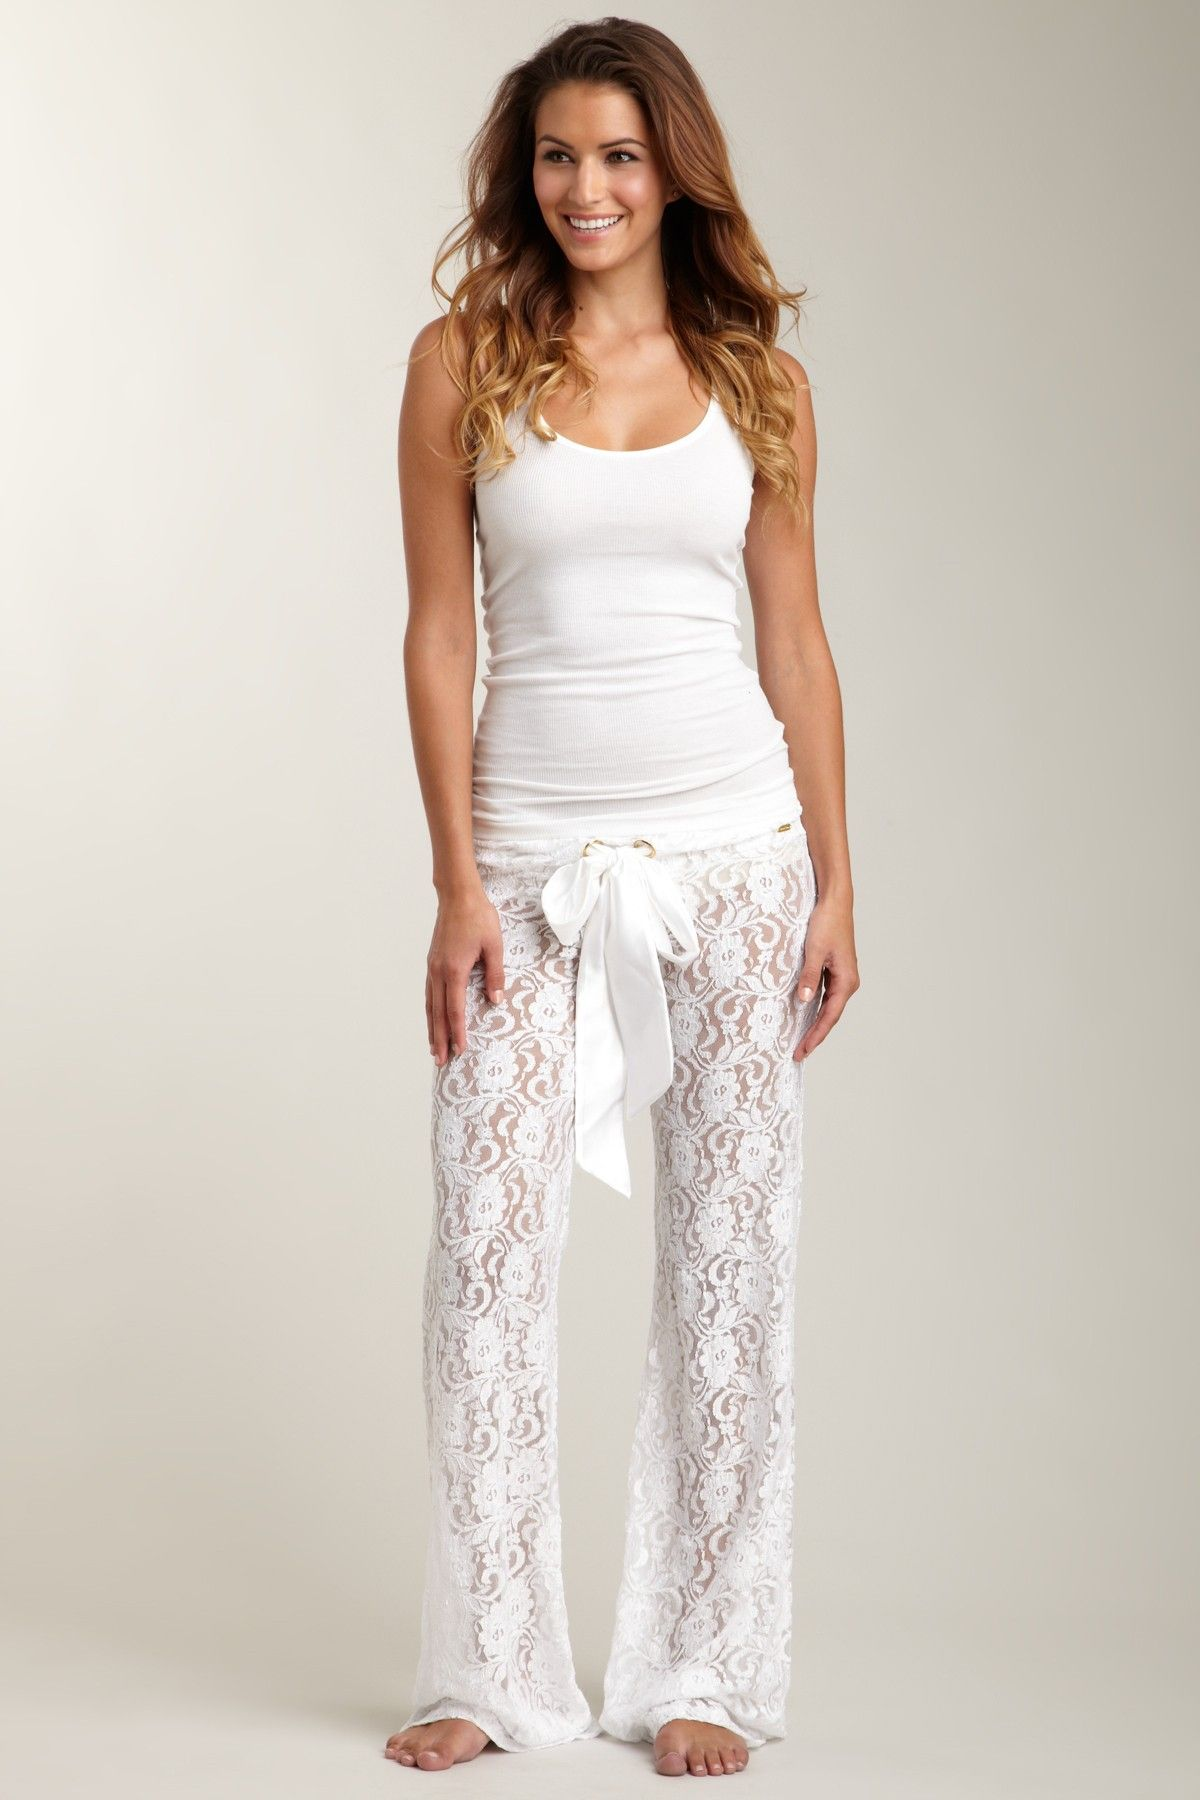 fbb78c65b7415 Lace pajama pants. Beautiful comfort :) | Fashion Amazement ...